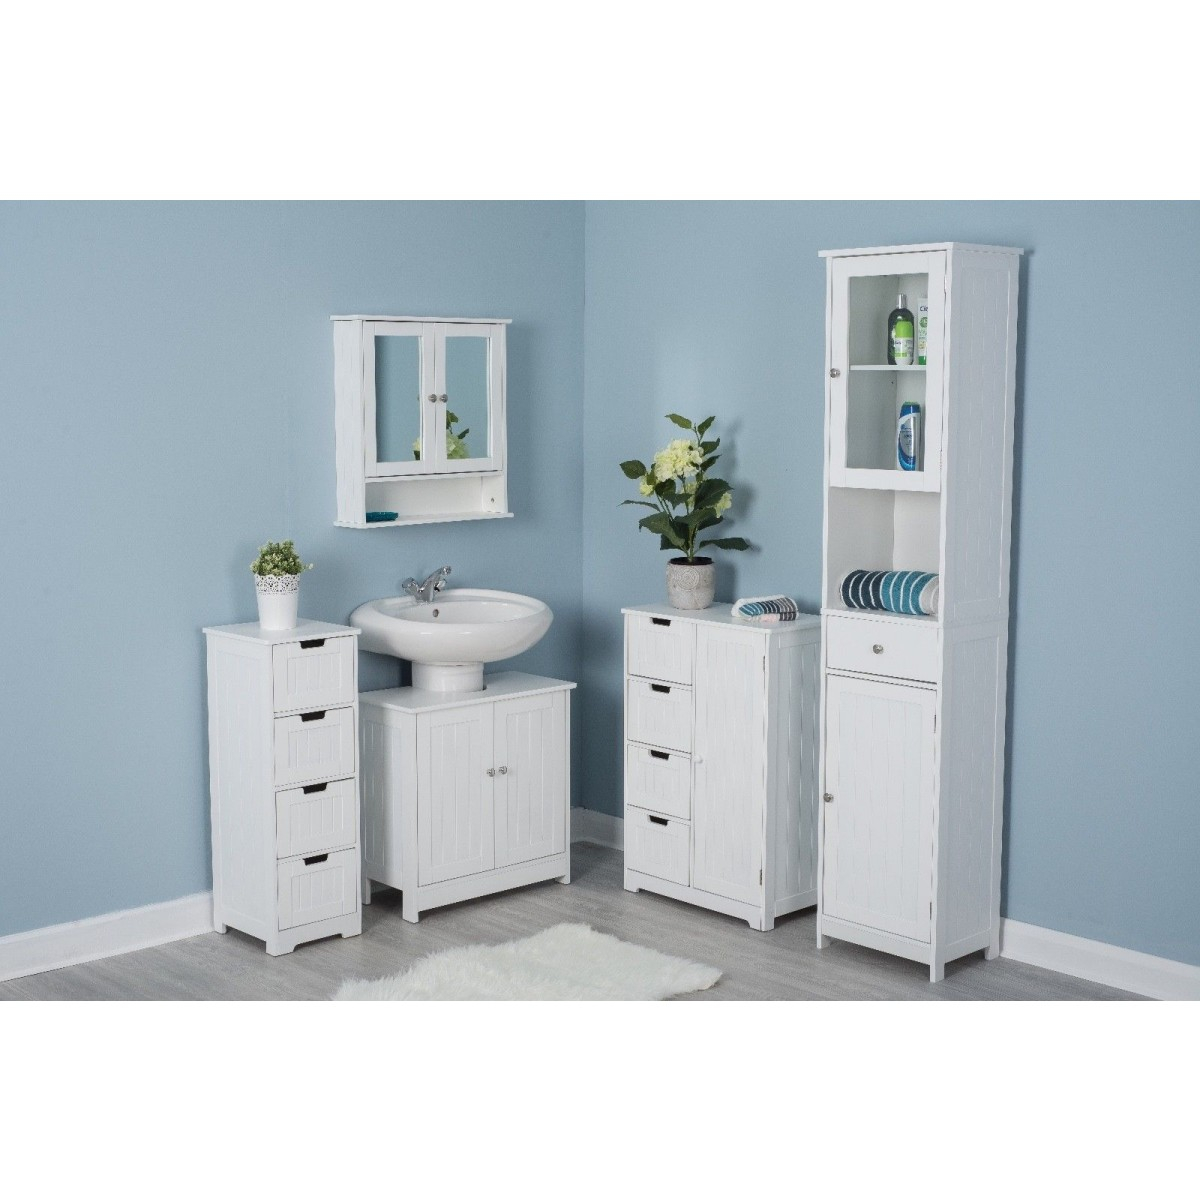 White Wooden Free Standing Bathroom Storage Cabinet Units intended for size 1200 X 1200